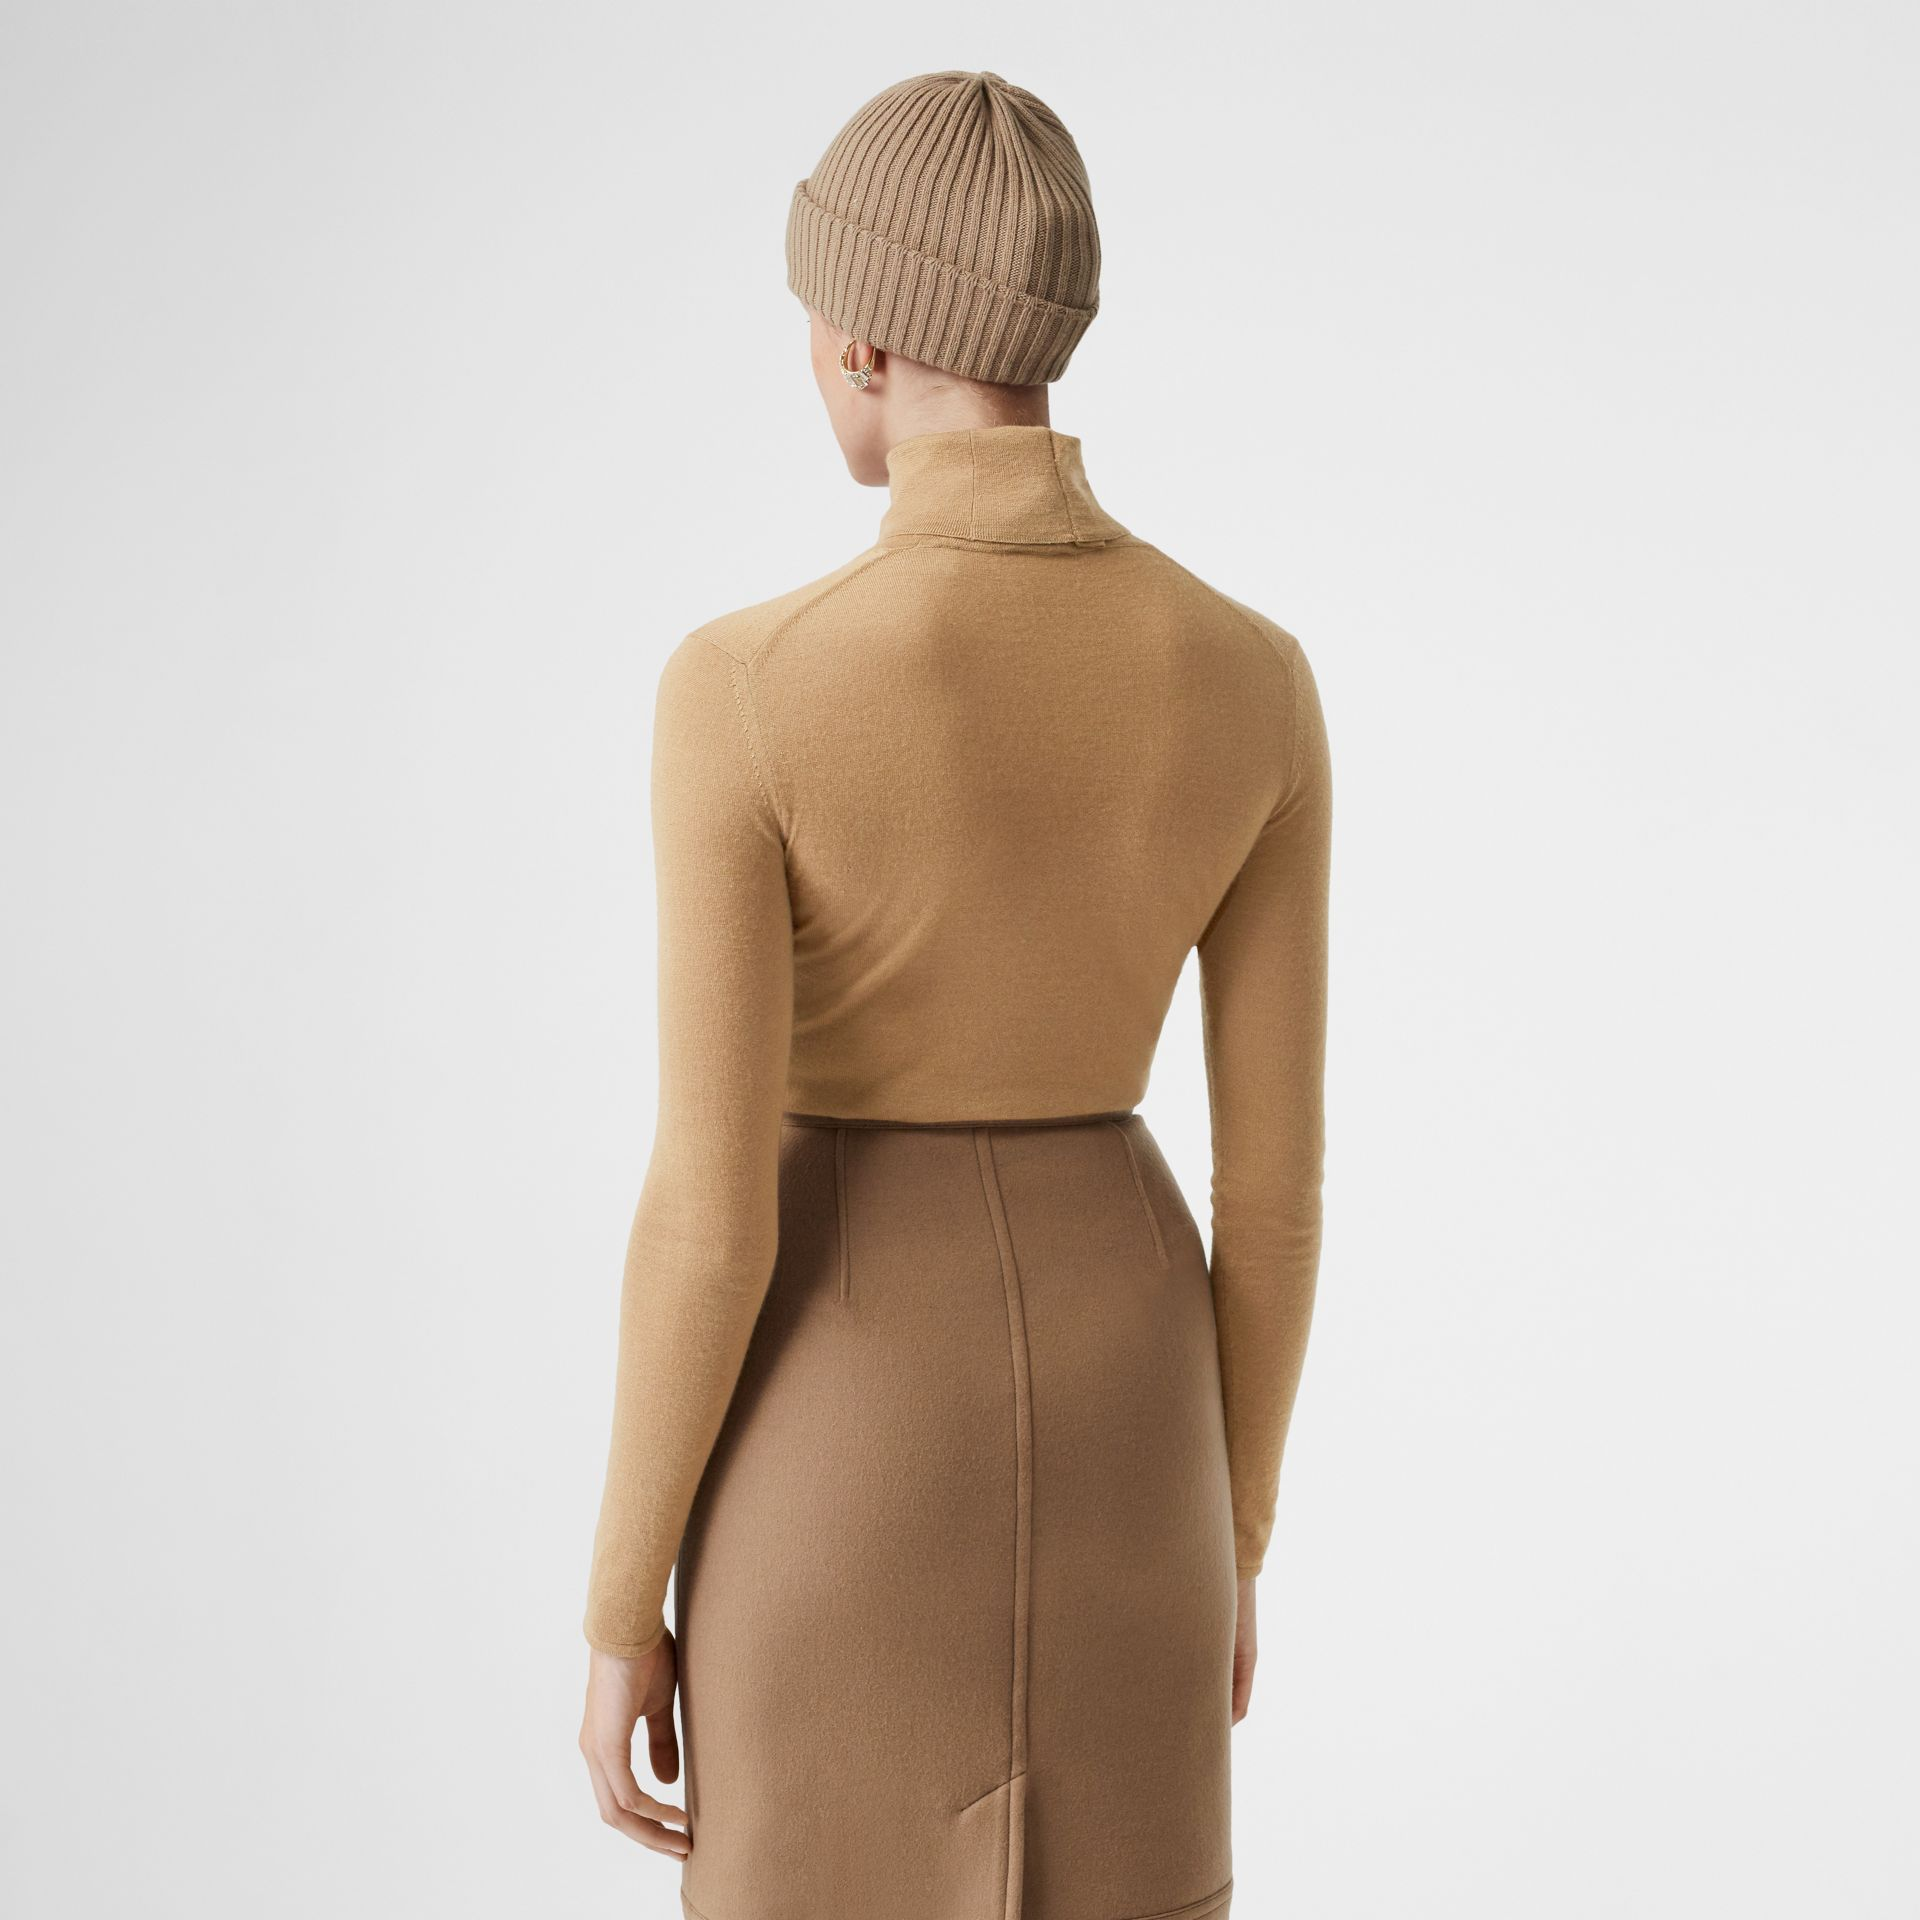 Embroidered Logo Cashmere Silk Roll-neck Sweater in Archive Beige - Women | Burberry - gallery image 2